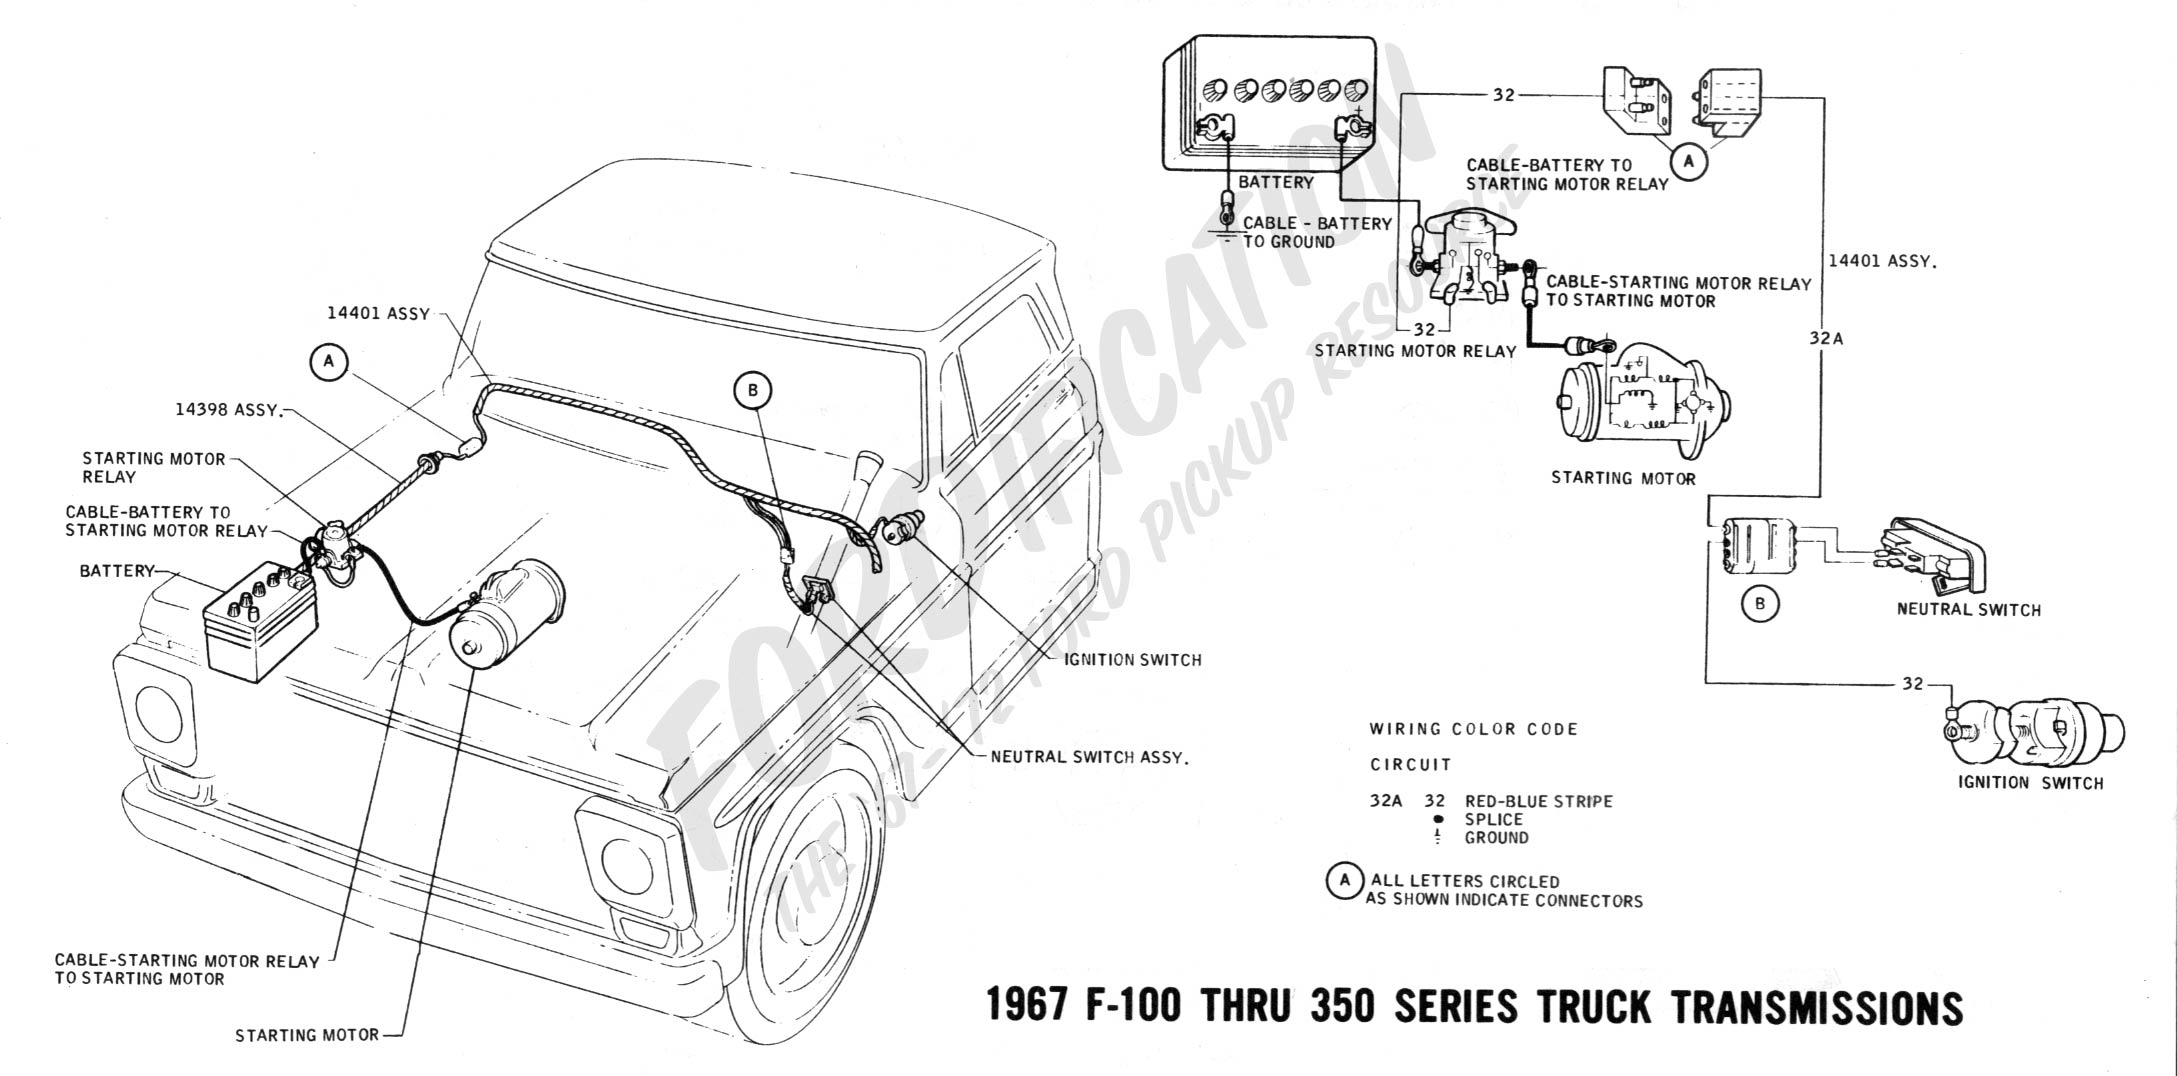 ford truck technical drawings and schematics section h wiring rh fordification com 1999 Ford F-250 Wiring Diagram 1992 Ford F-250 Wiring Diagram